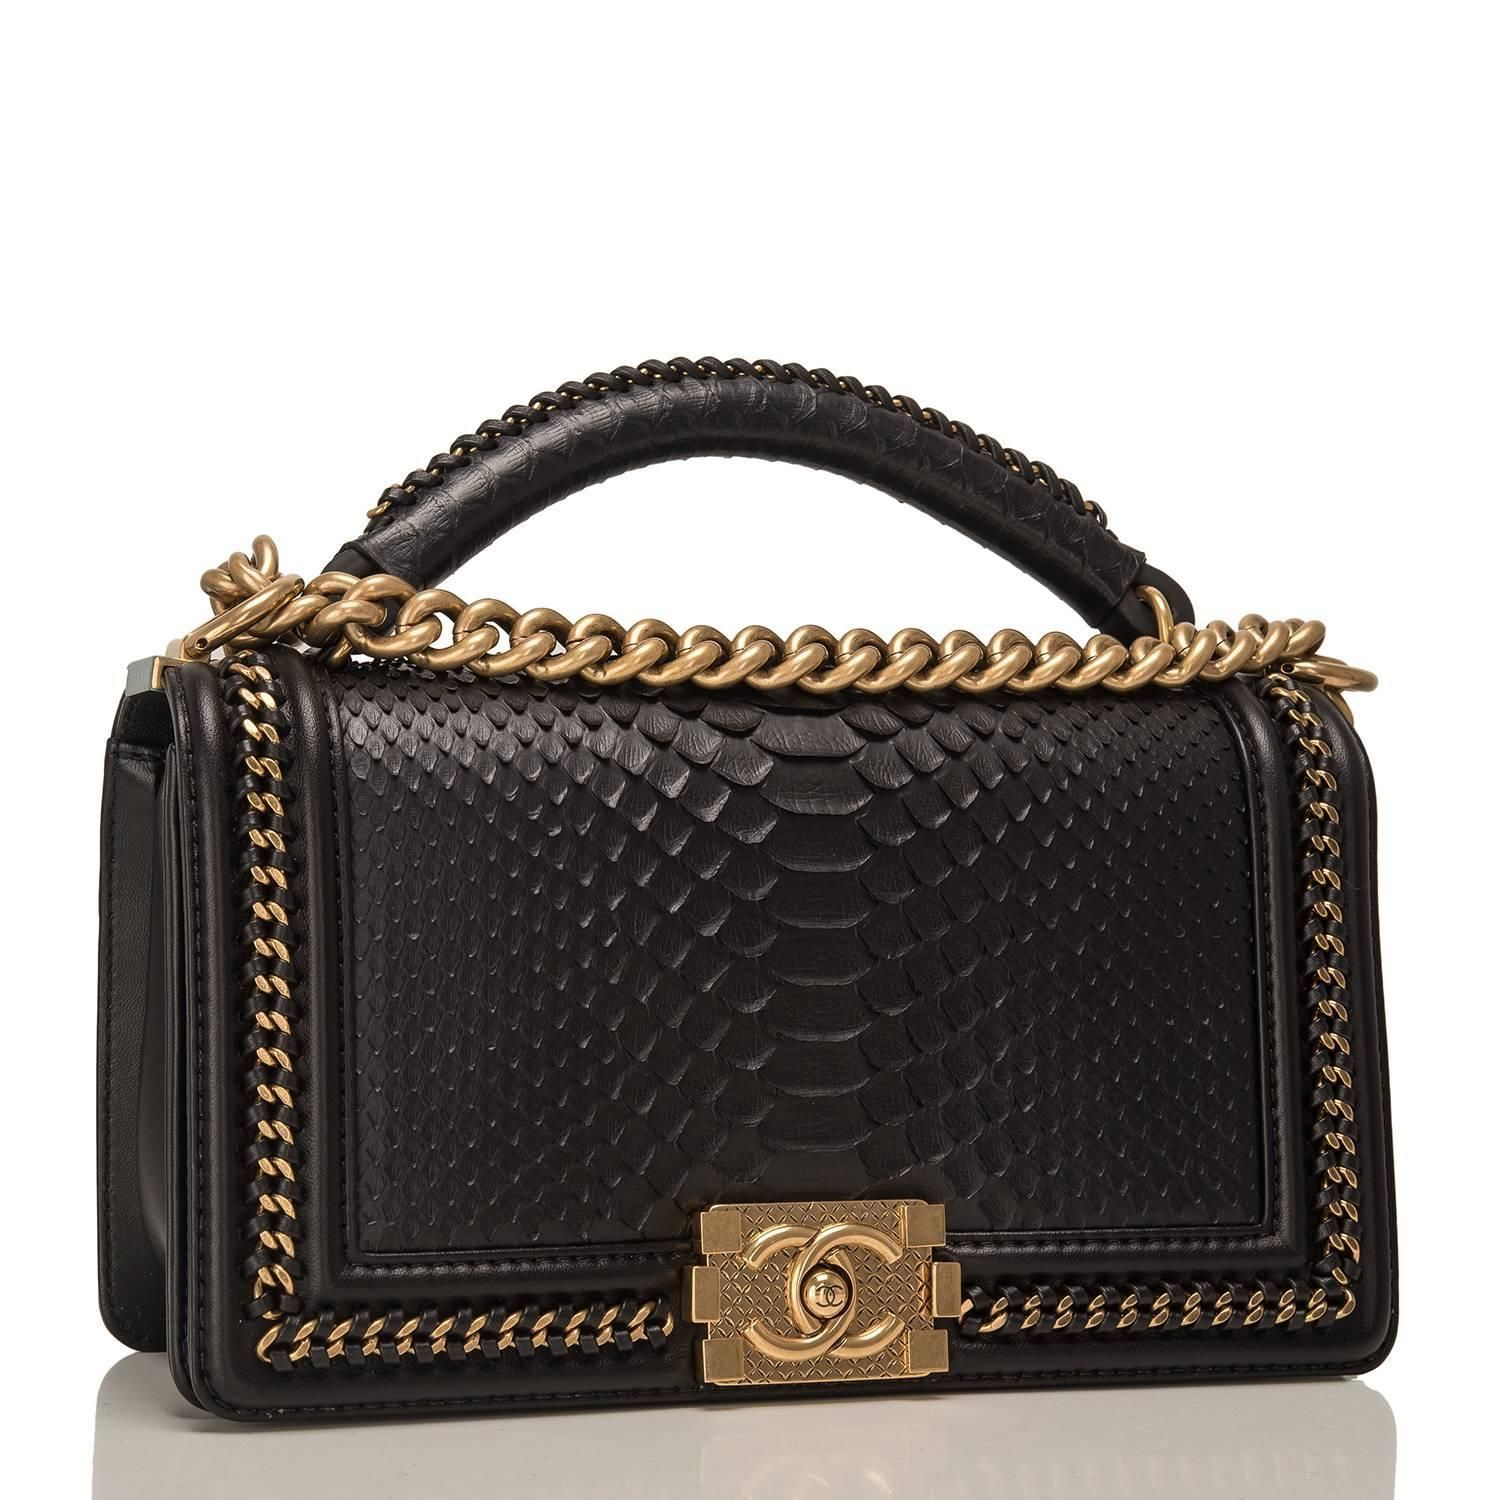 0ce313d882df Chanel Black Python Medium Boy Bag with Handle at 1stdibs